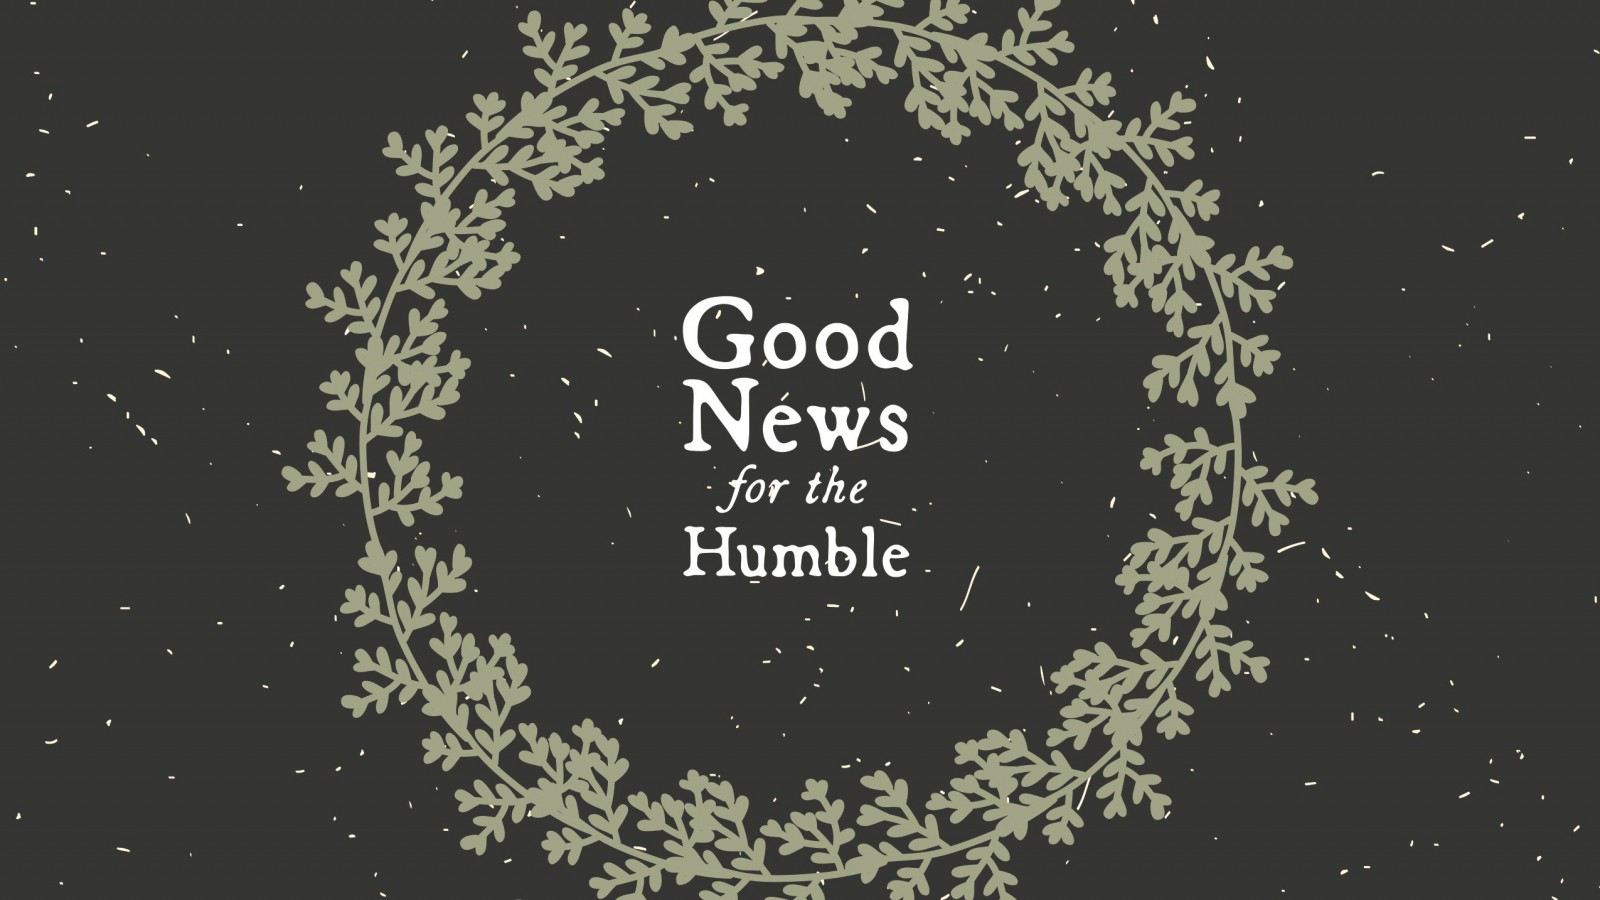 Good News for the Humble